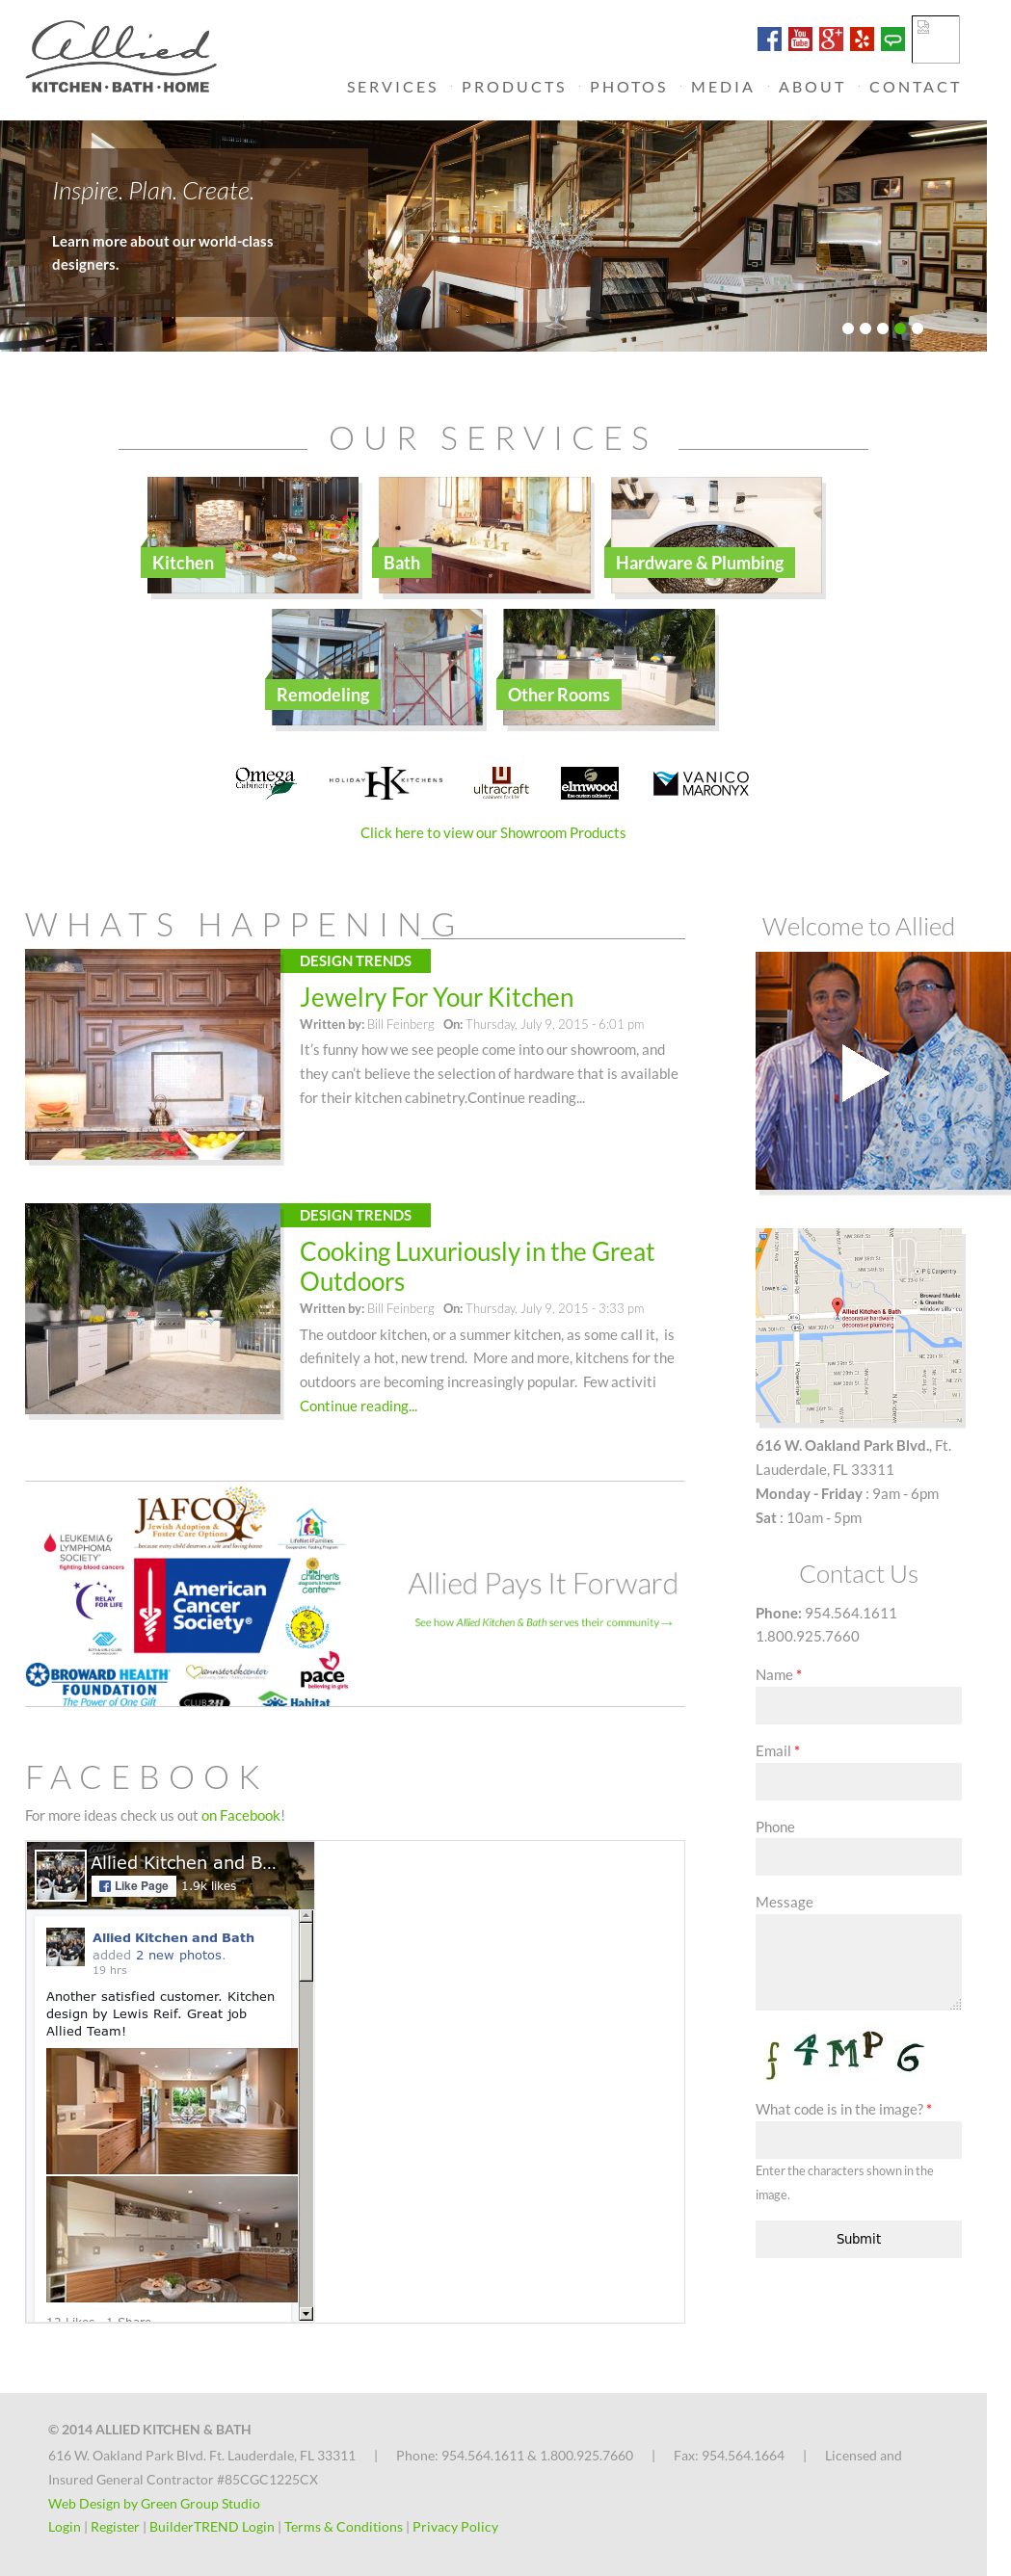 Allied Kitchen & Bath Company Profile - Revenue, Number of Employees ...